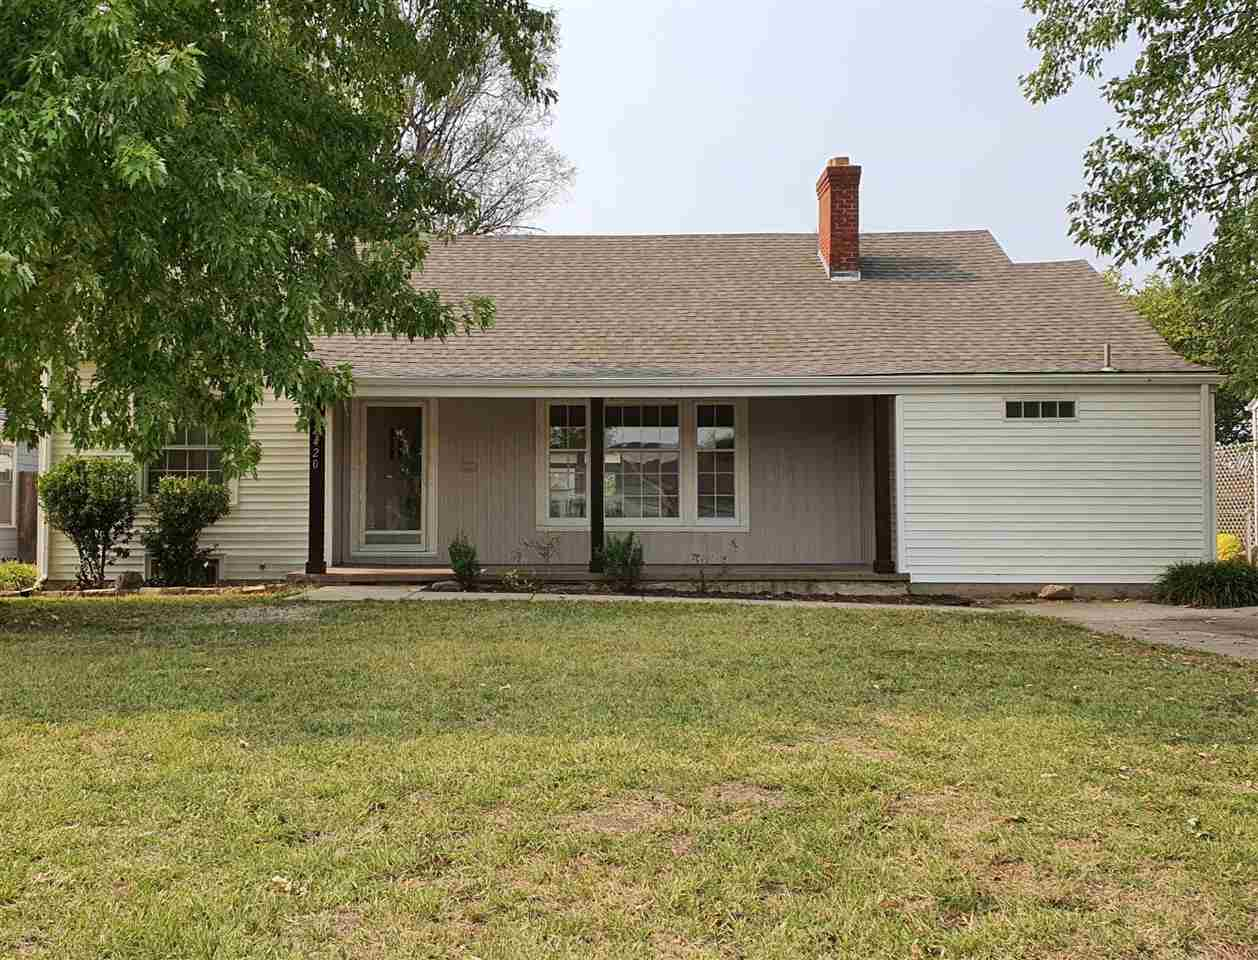 Charming 3 bedroom ranch with 2.5 baths on a split floor plan. Brand new flooring, paint, counter to